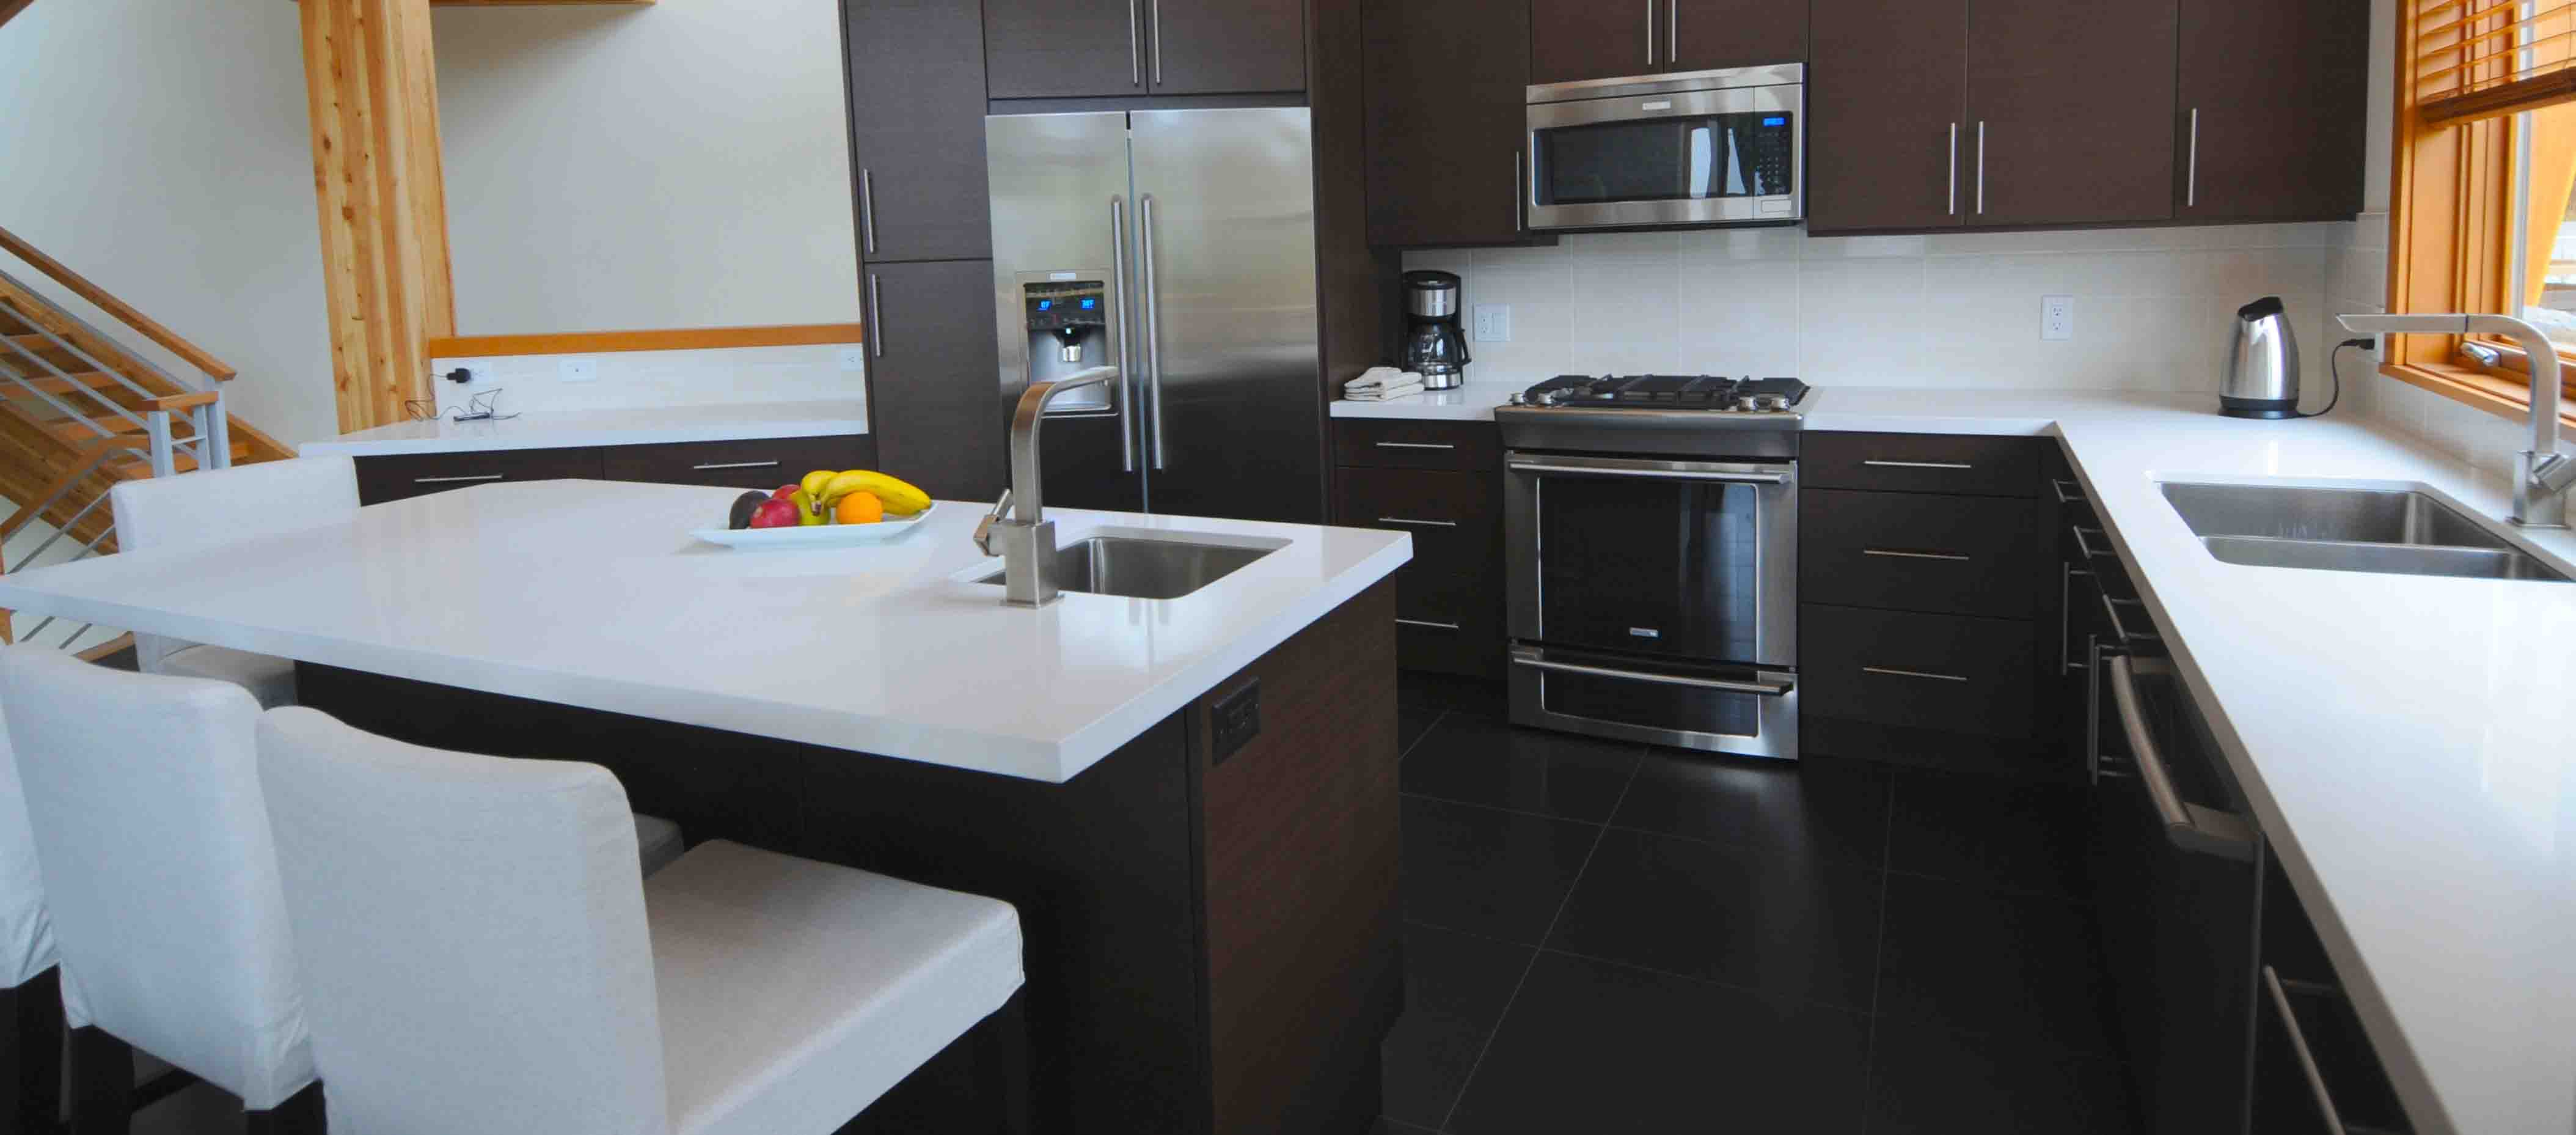 quartz countertops and quartz countertops